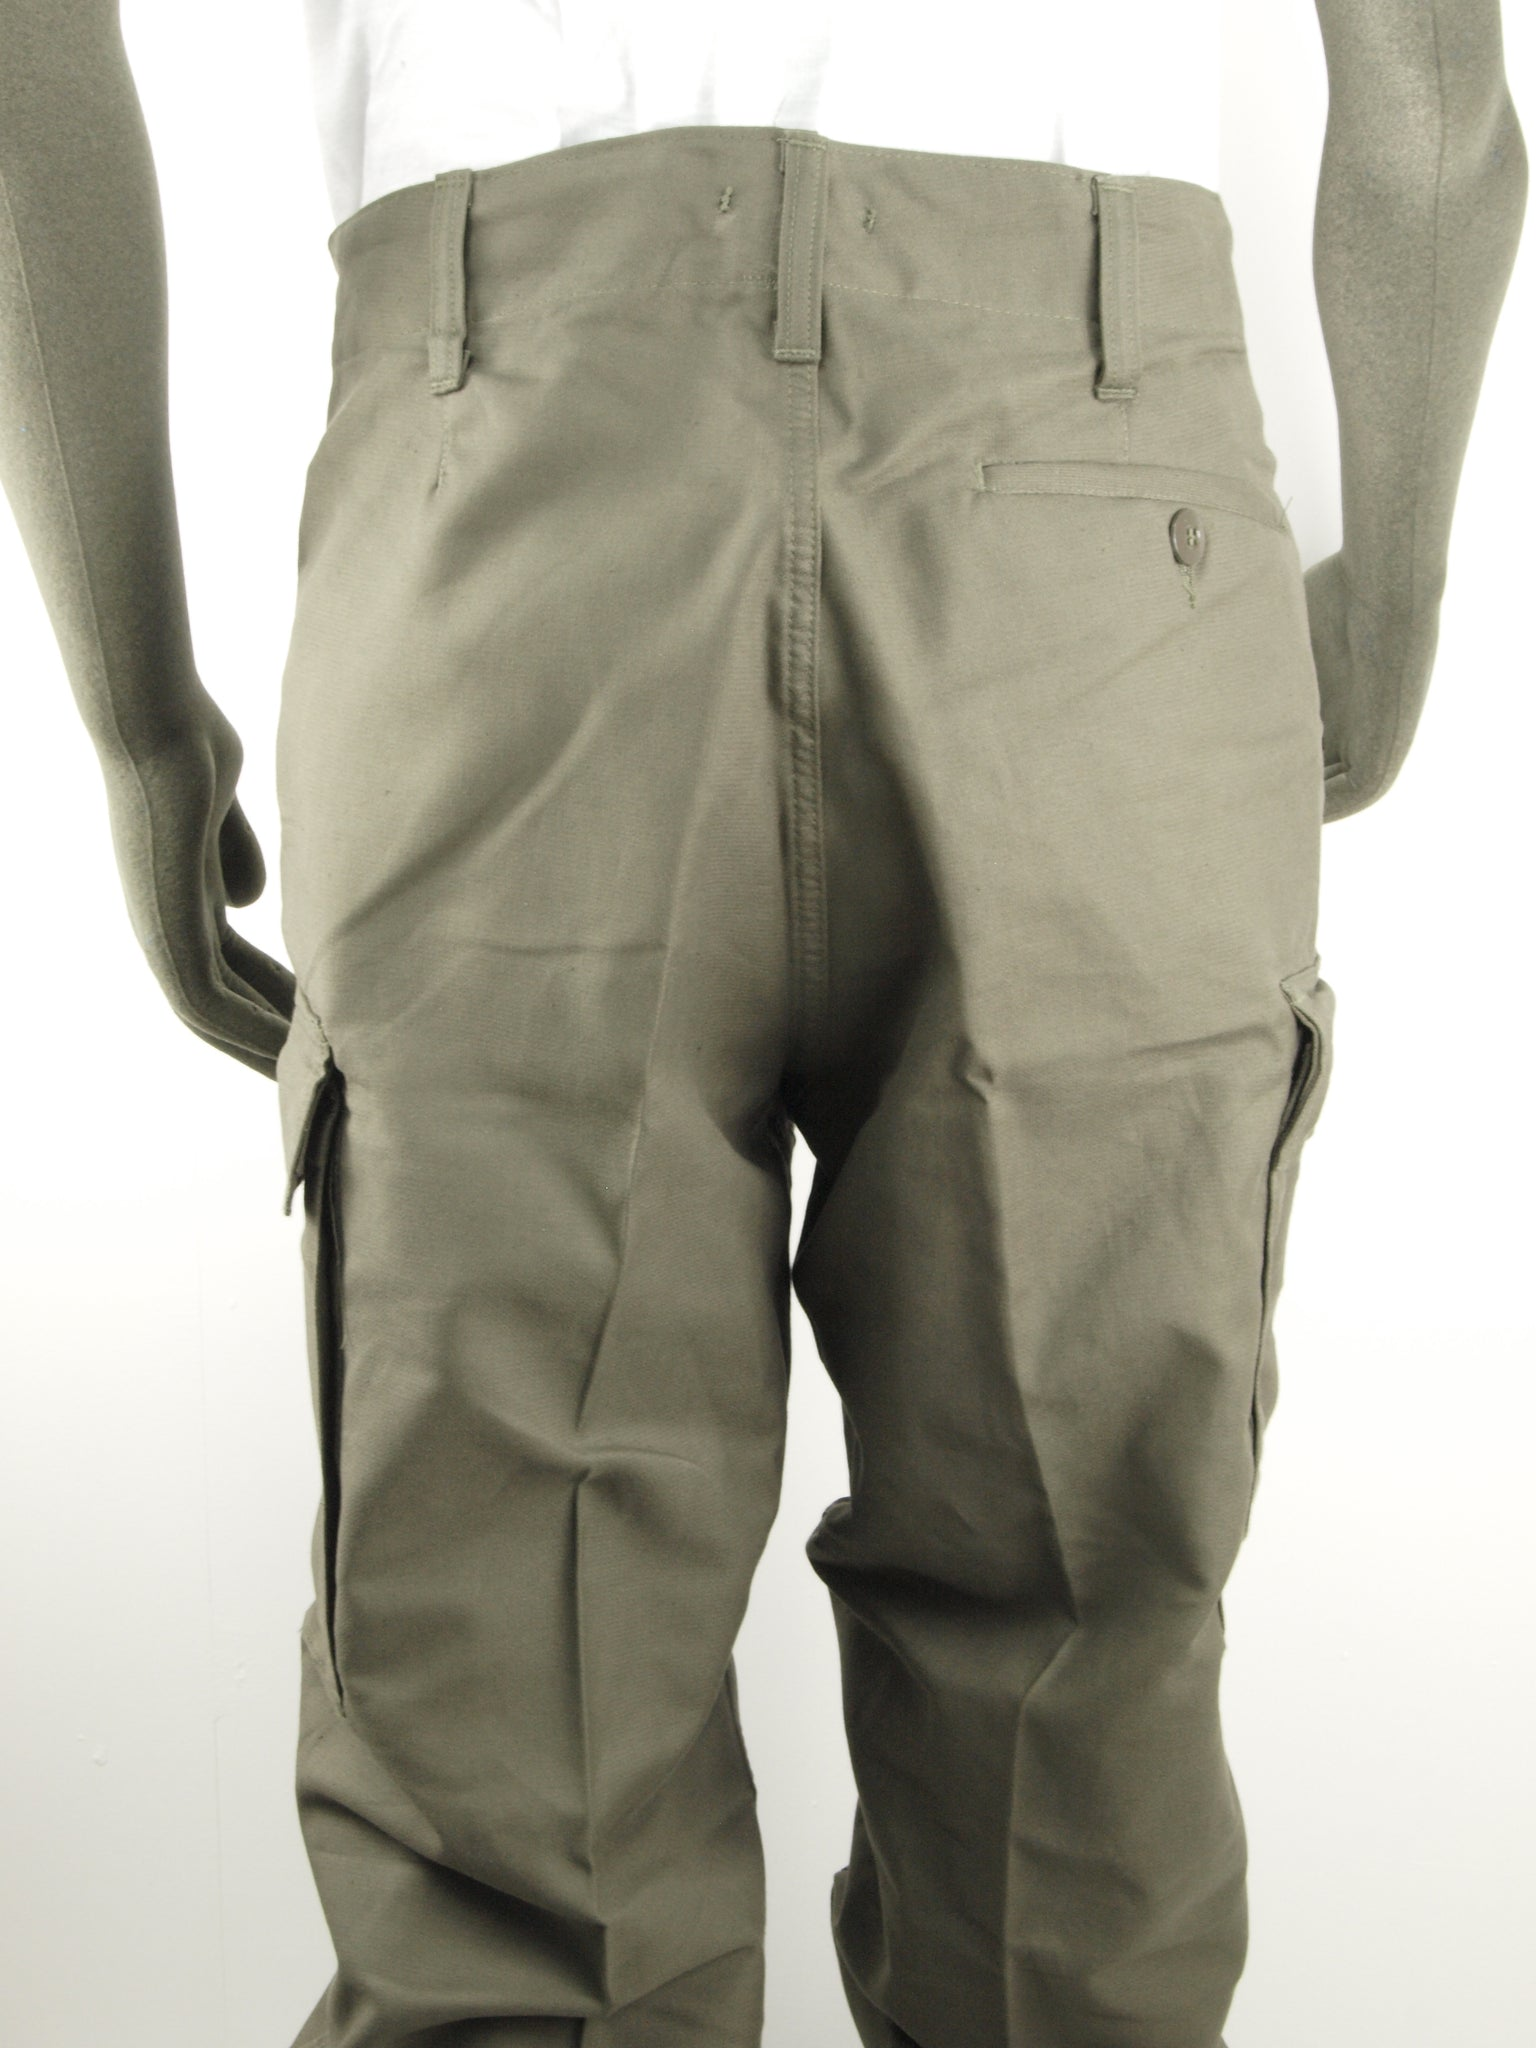 New Small sizes German Army Moleskin Trousers